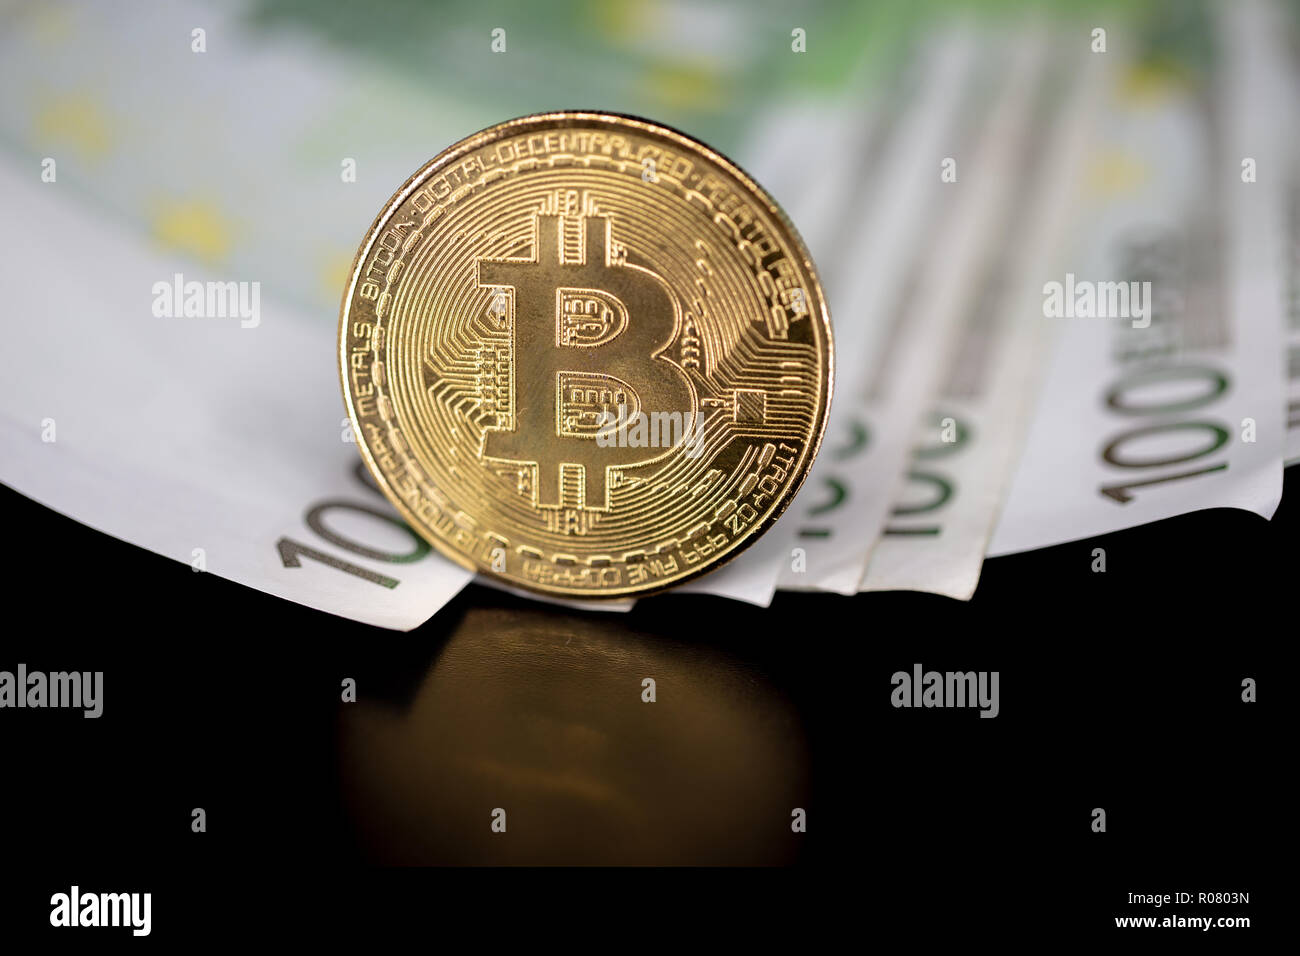 Bitcoin token on black with reflection, with a big pile of euro banknote money in the background Stock Photo